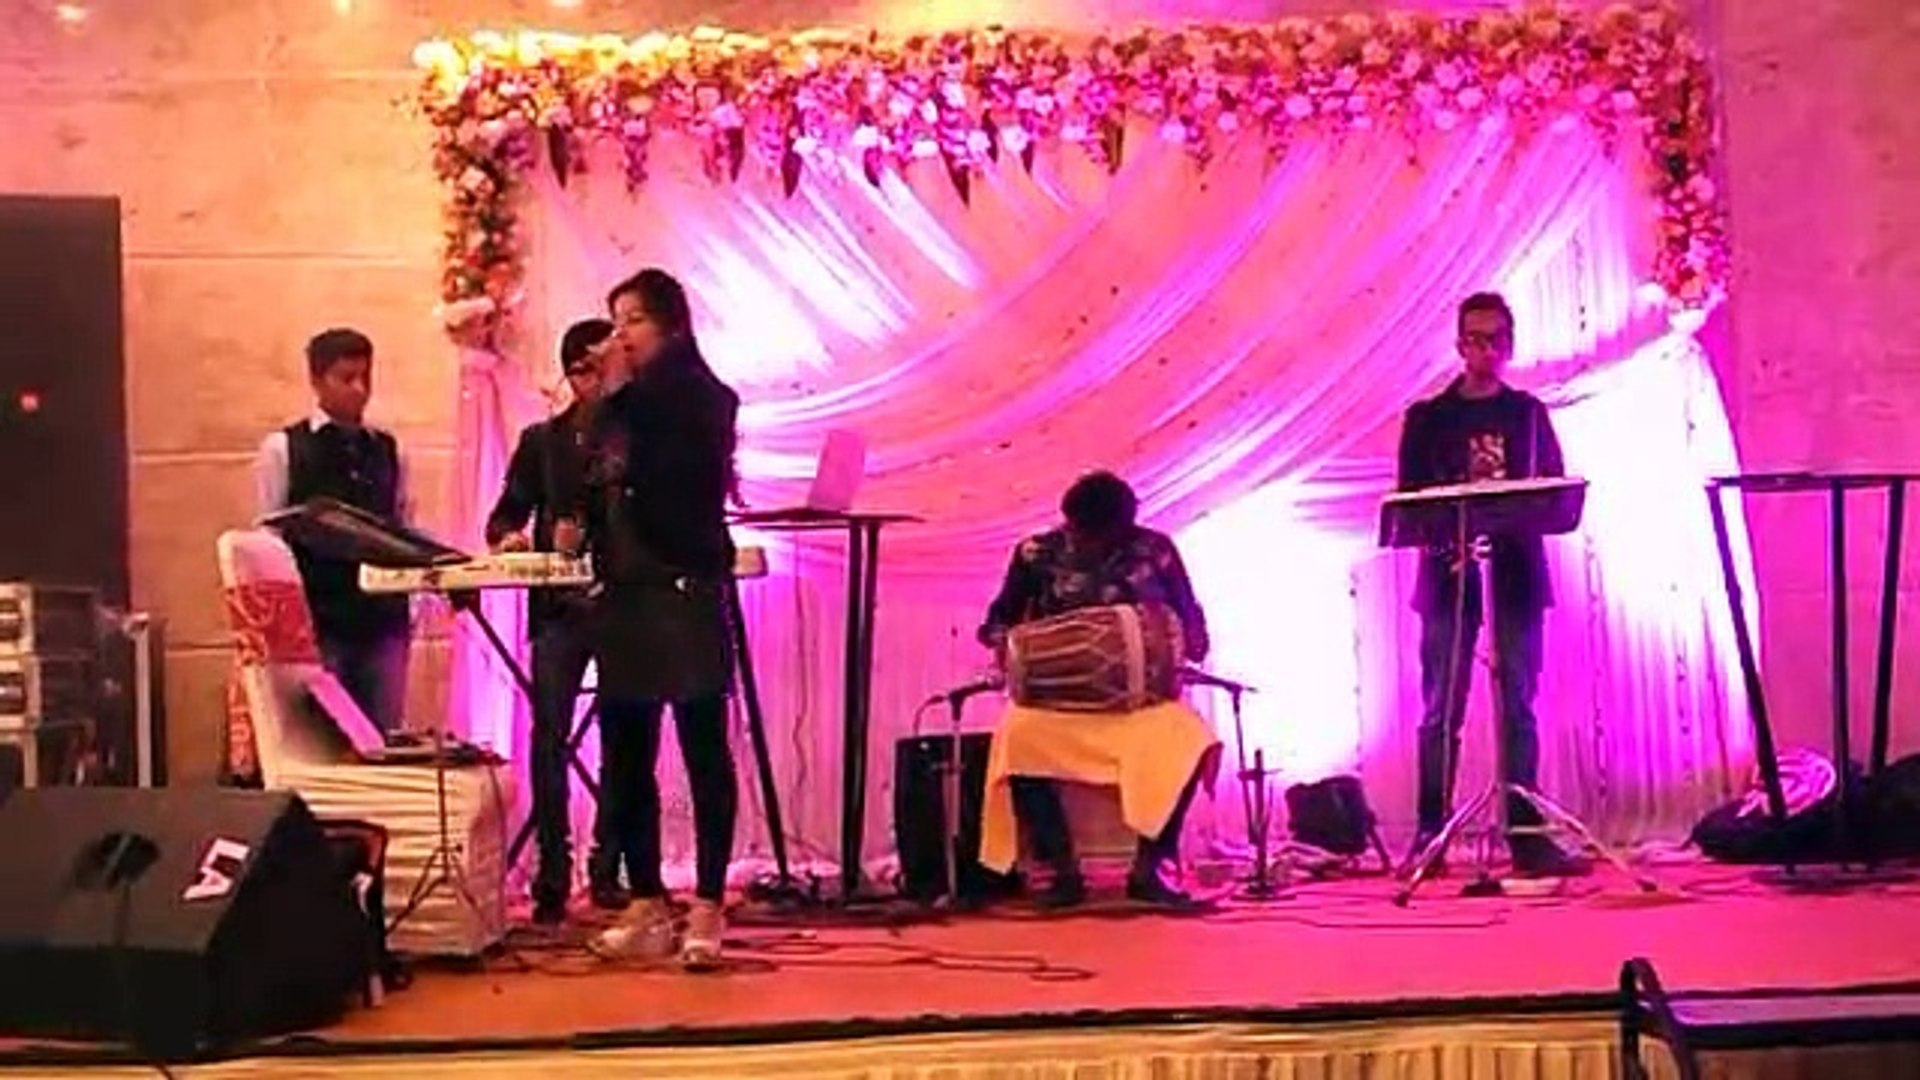 Book Punjabi Singer For Wedding Marriage Reception,Punjabi Female Singer For Ring Ceremony Sangeet F